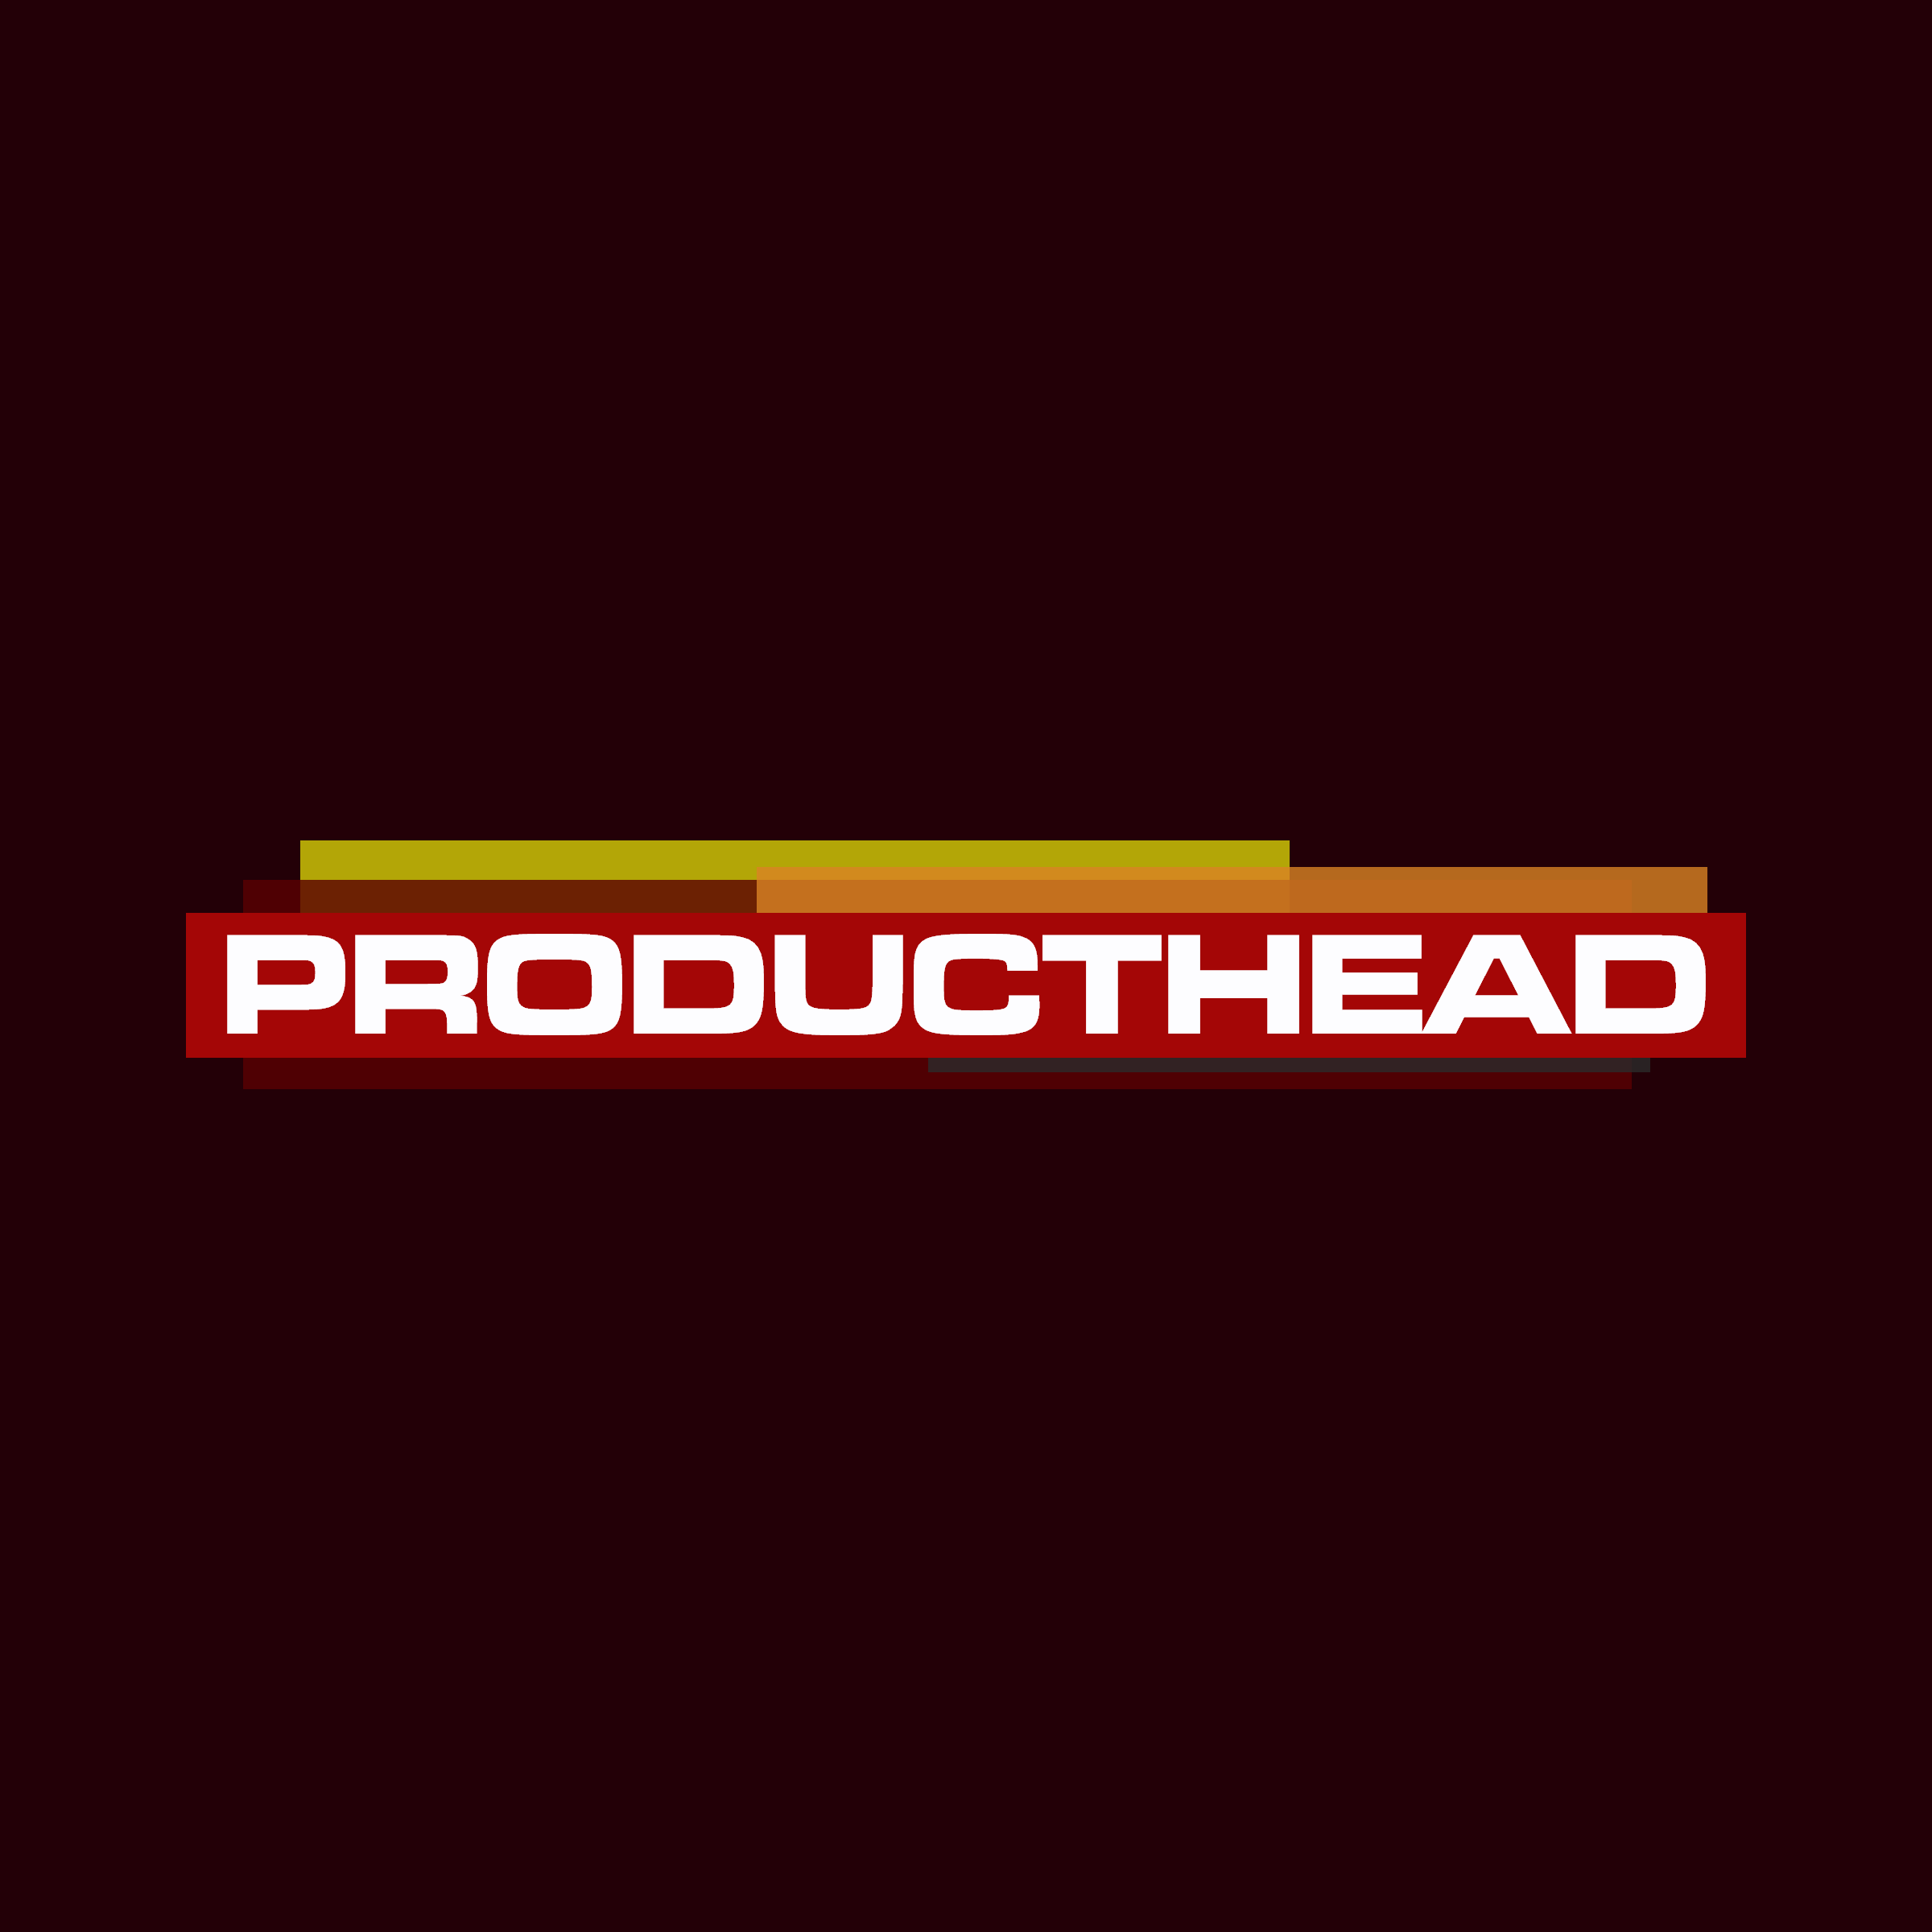 PRODUCTHEAD: Digital inclusion and accessibility